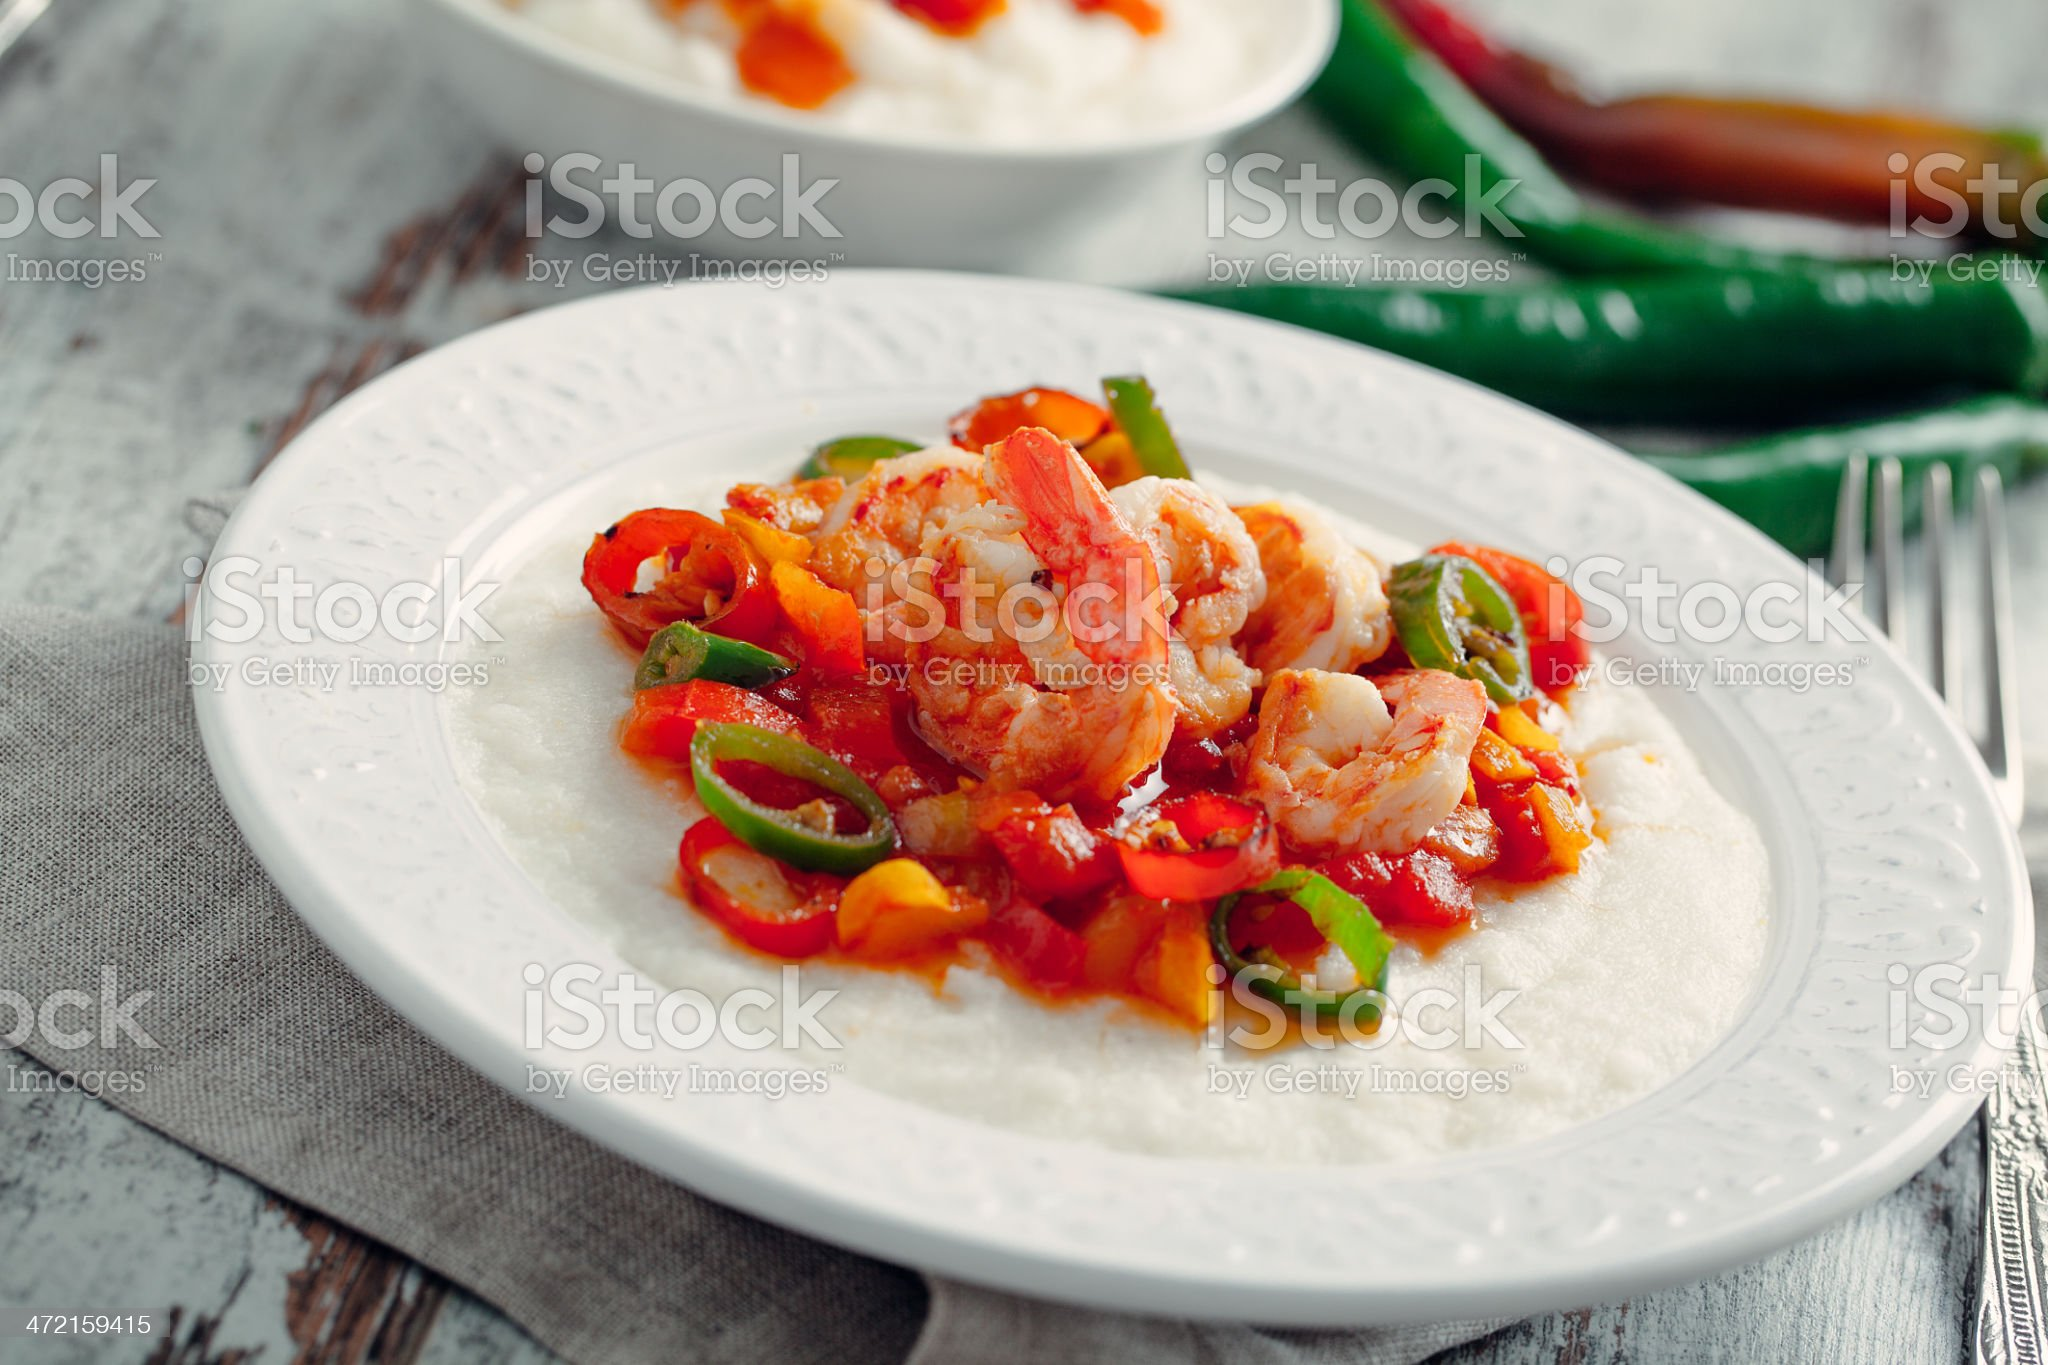 Shrimp and Grits royalty-free stock photo